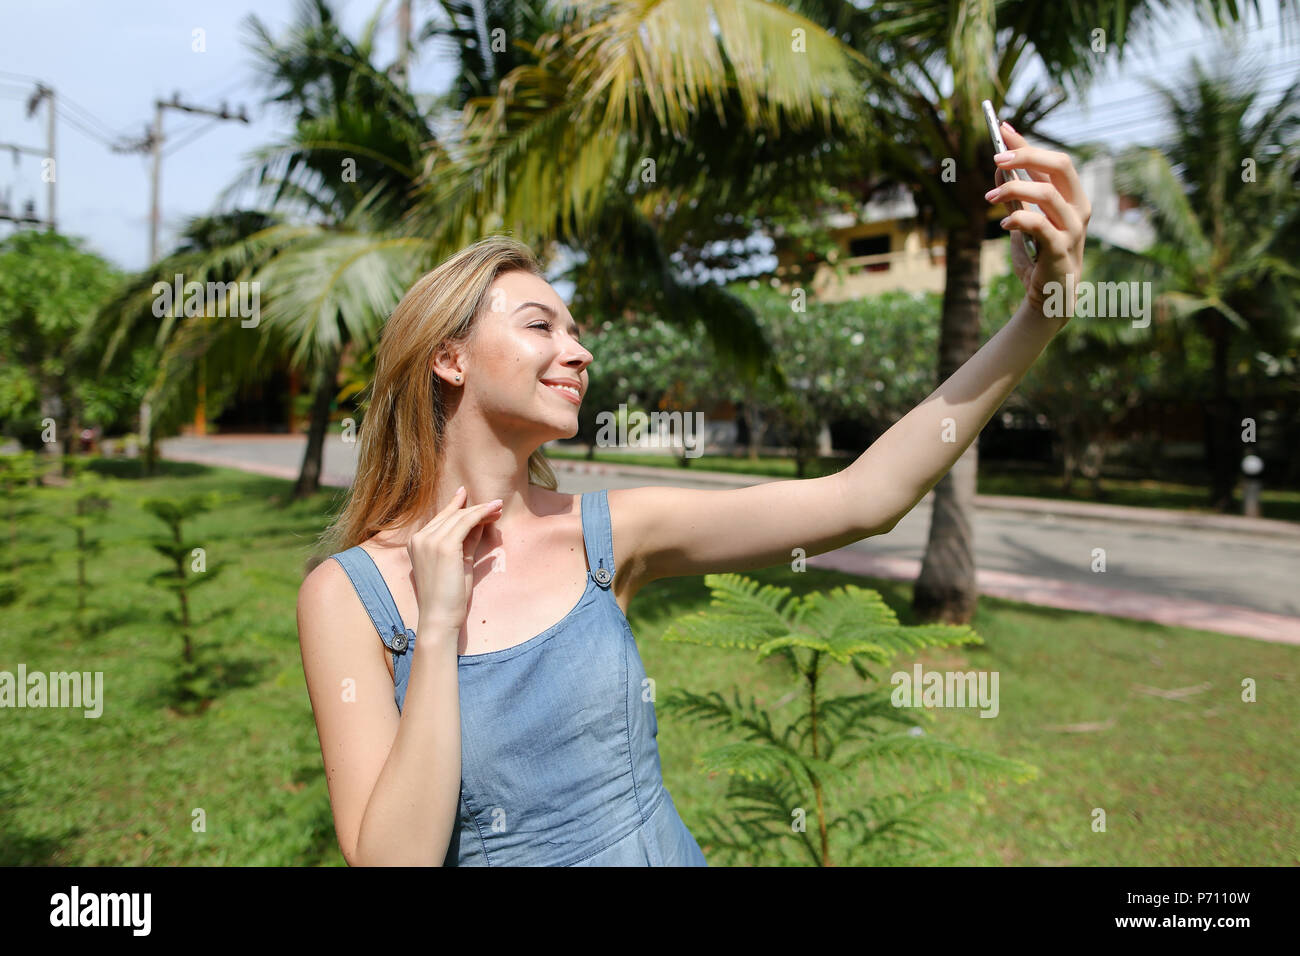 Young pretty woman making selfie by smartphone with palms in background. - Stock Image